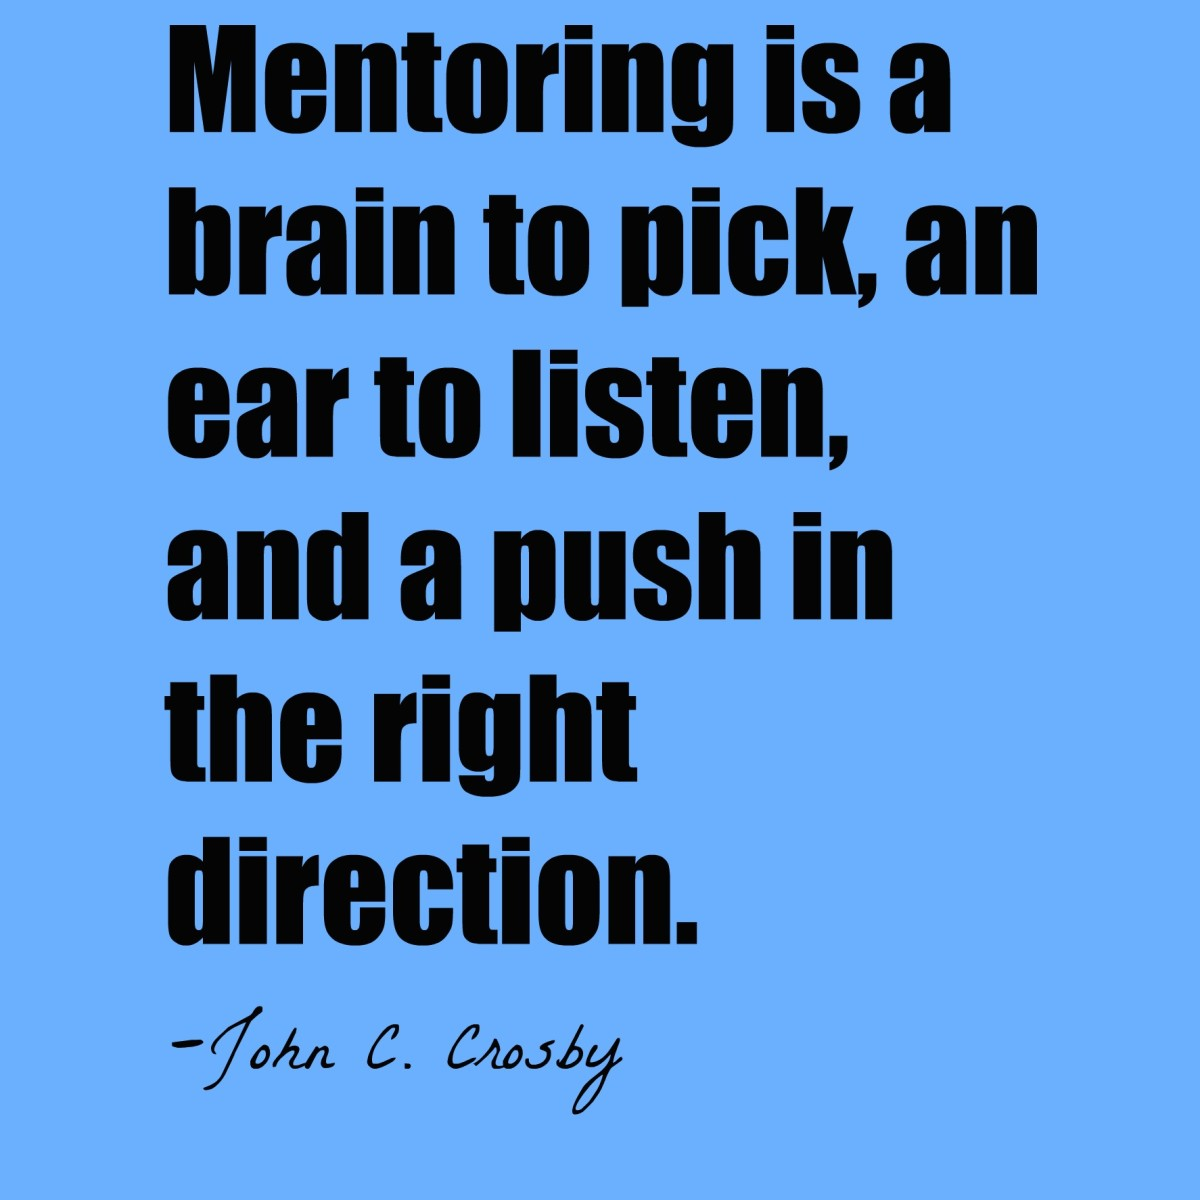 Quote on mentorship